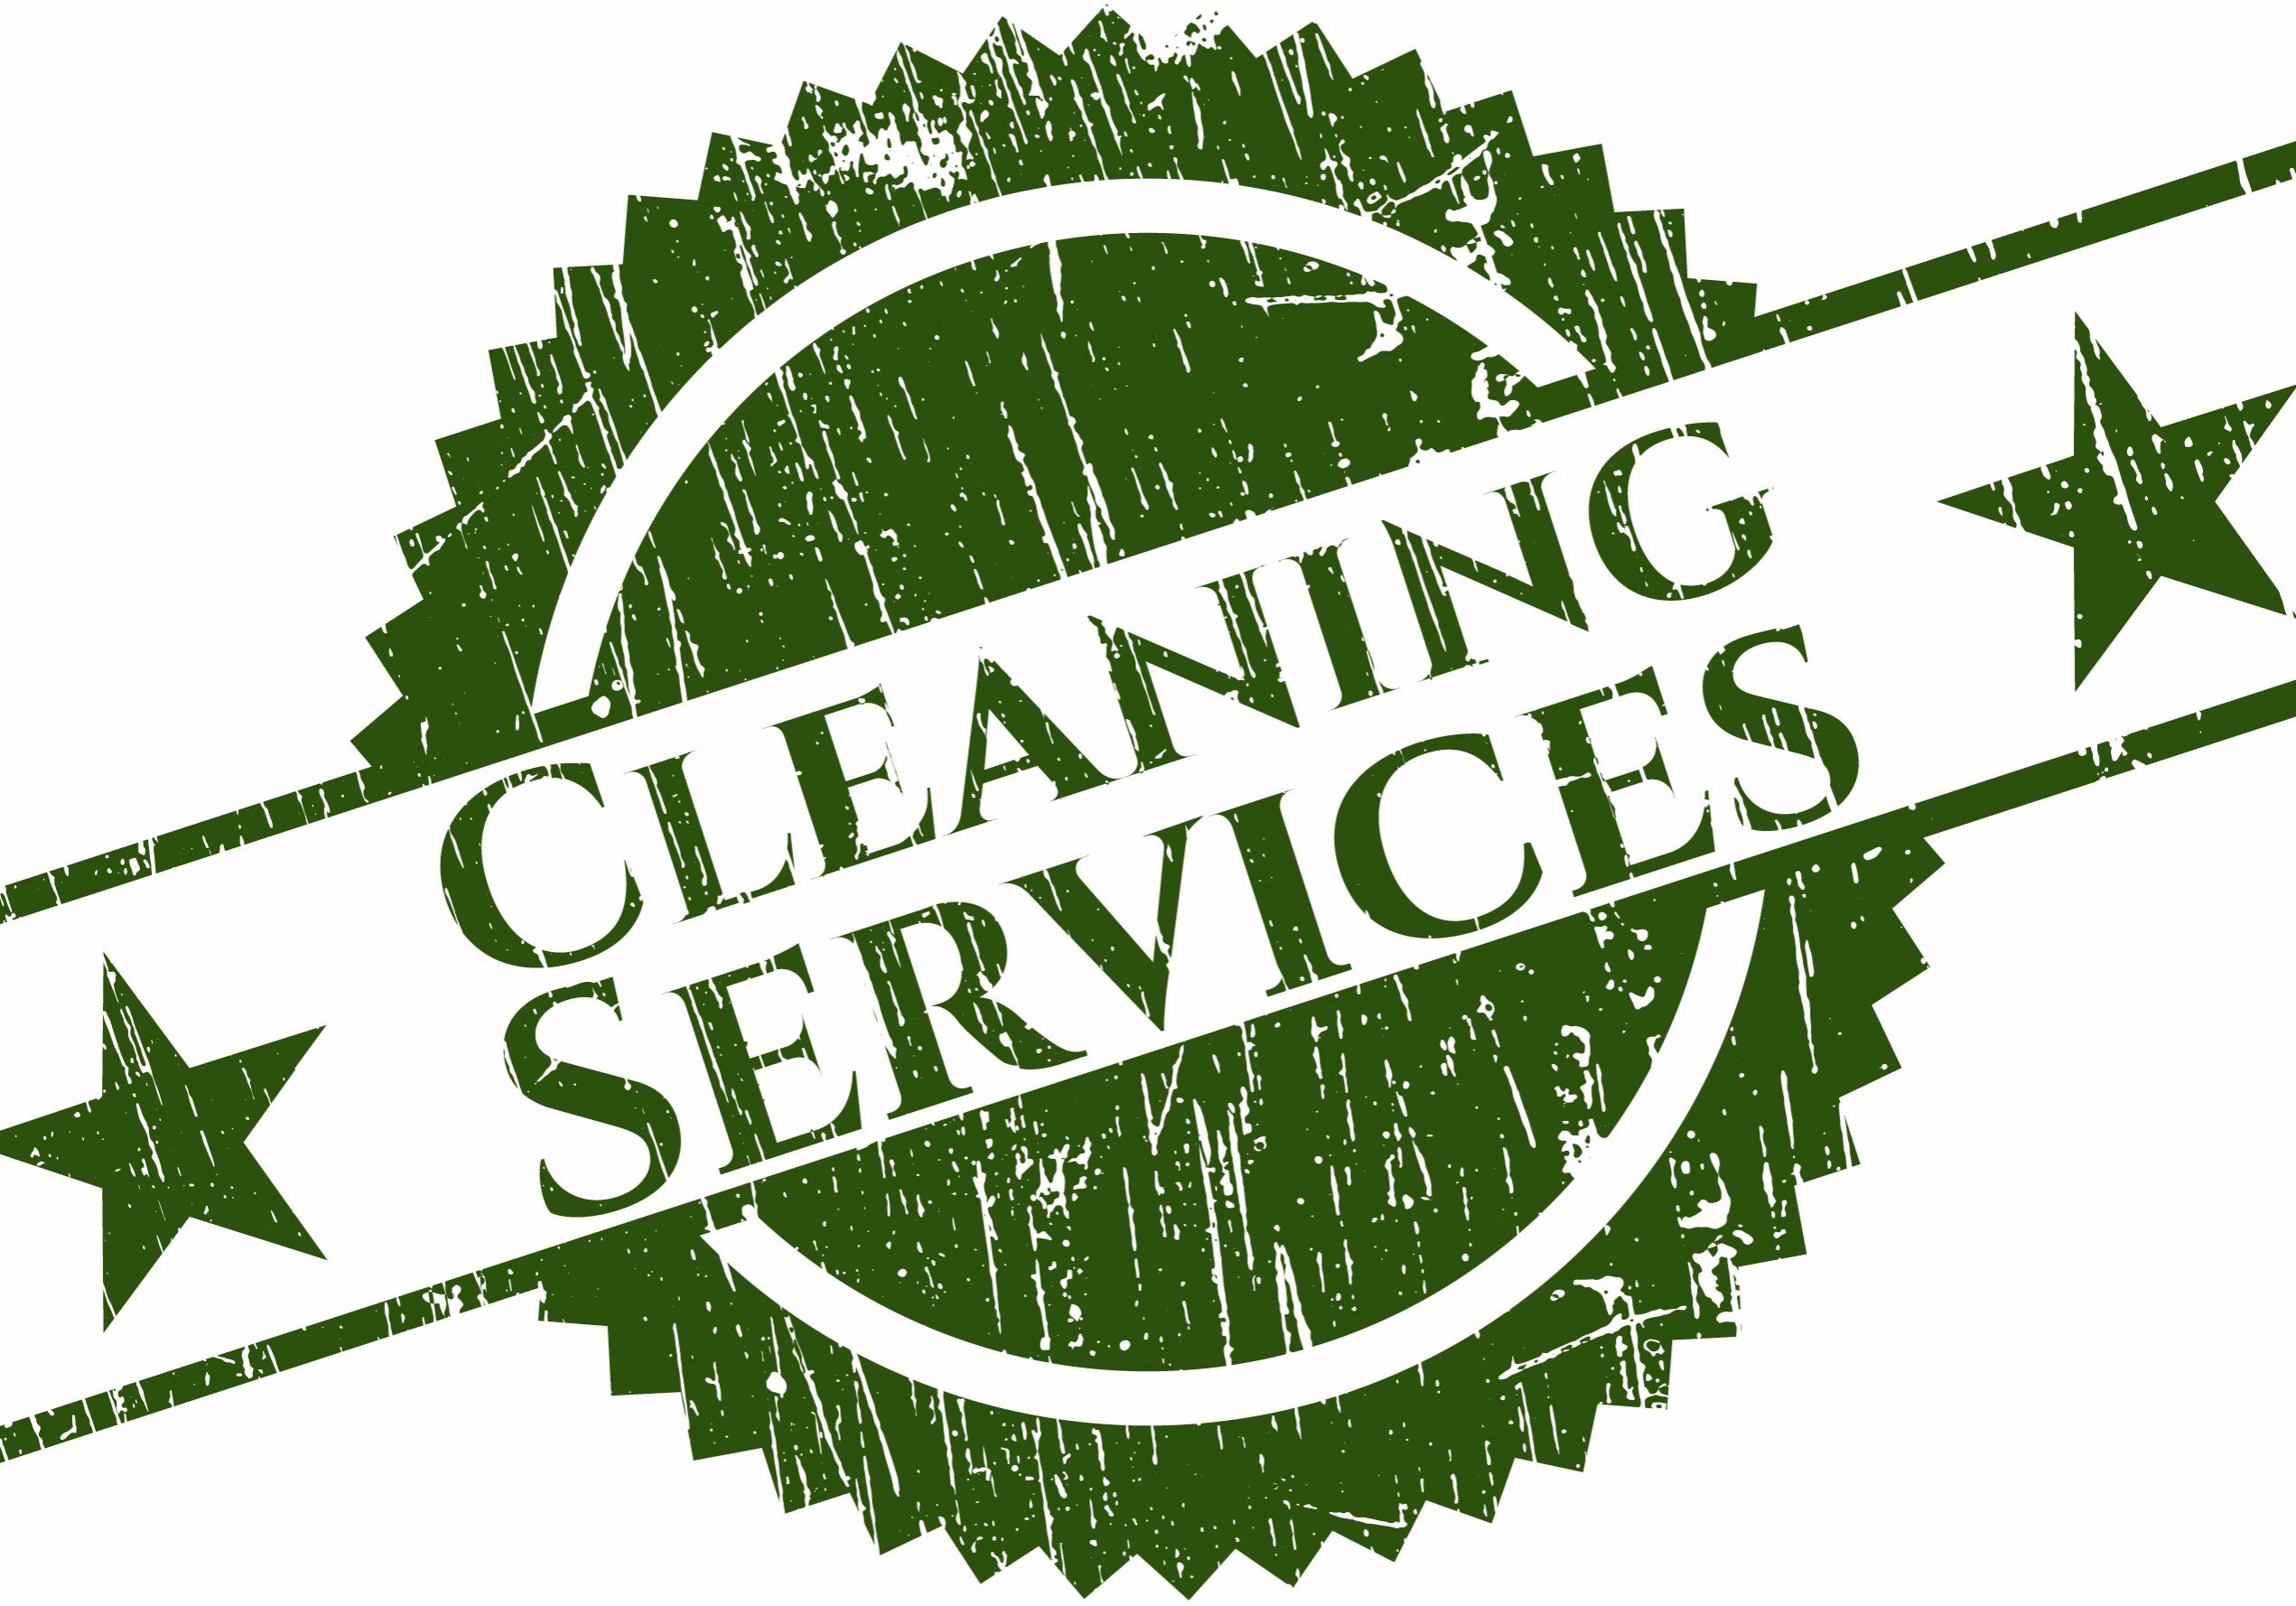 Cleaning services original_414390784